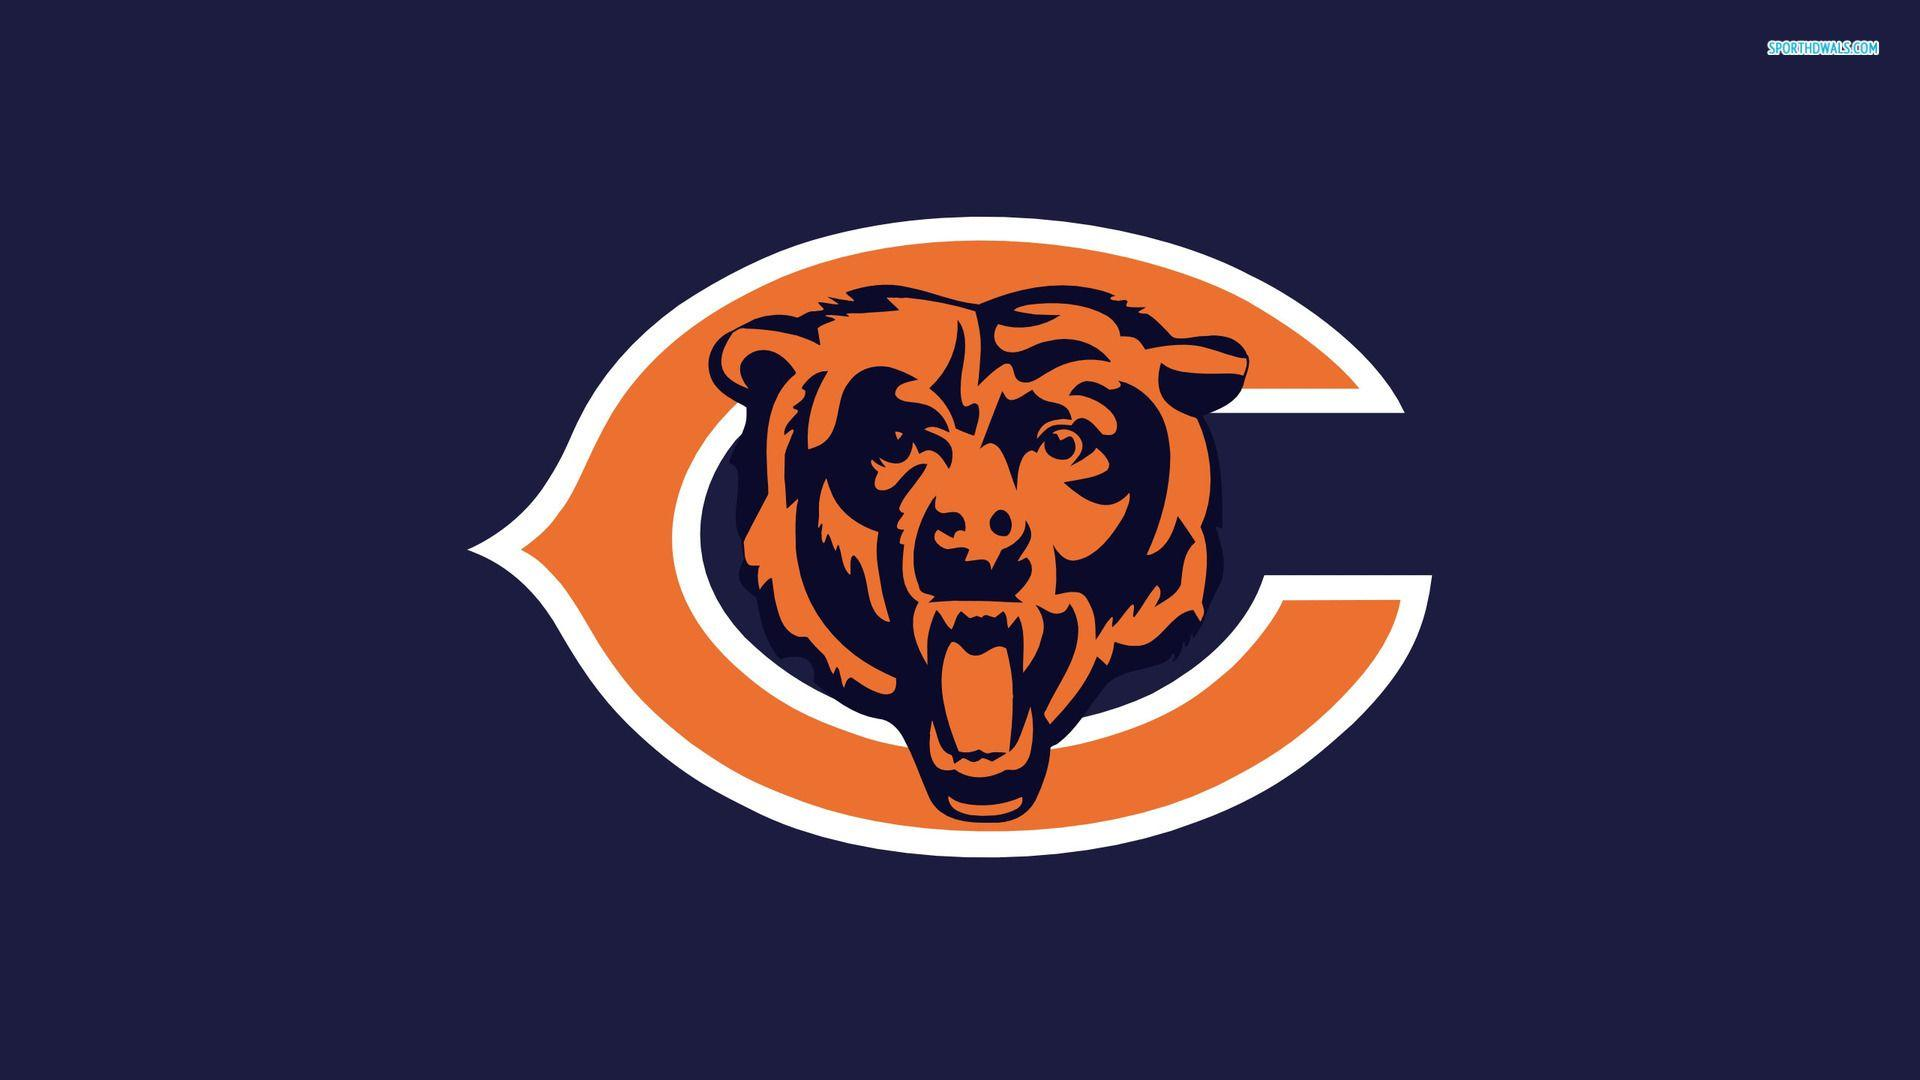 Chicago Bears Wallpapers 2015 1920x1080